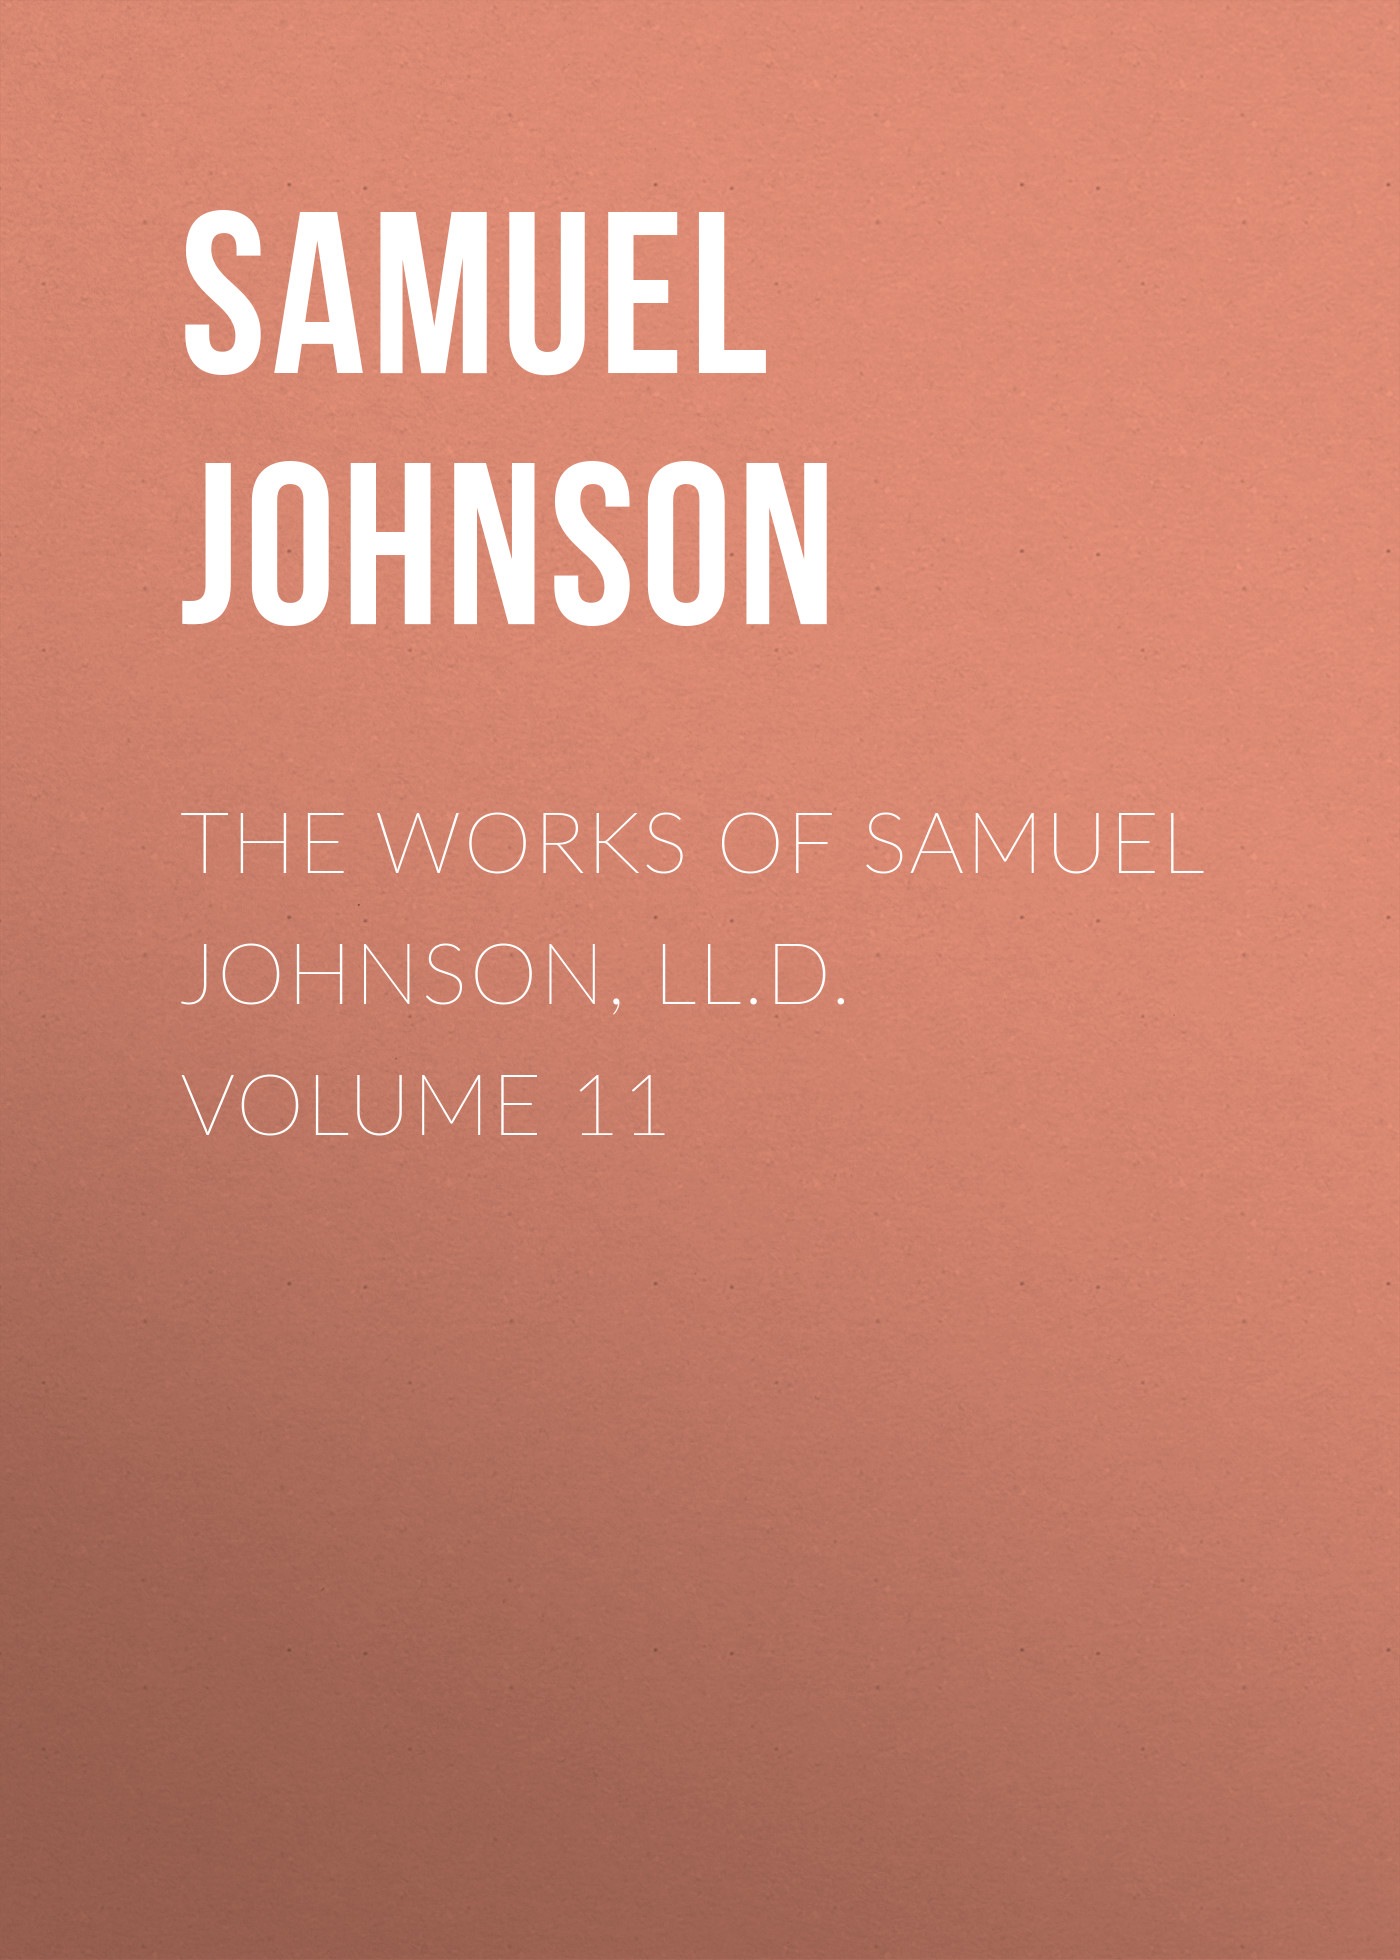 Samuel Johnson The Works of Samuel Johnson, LL.D. Volume 11 цена и фото